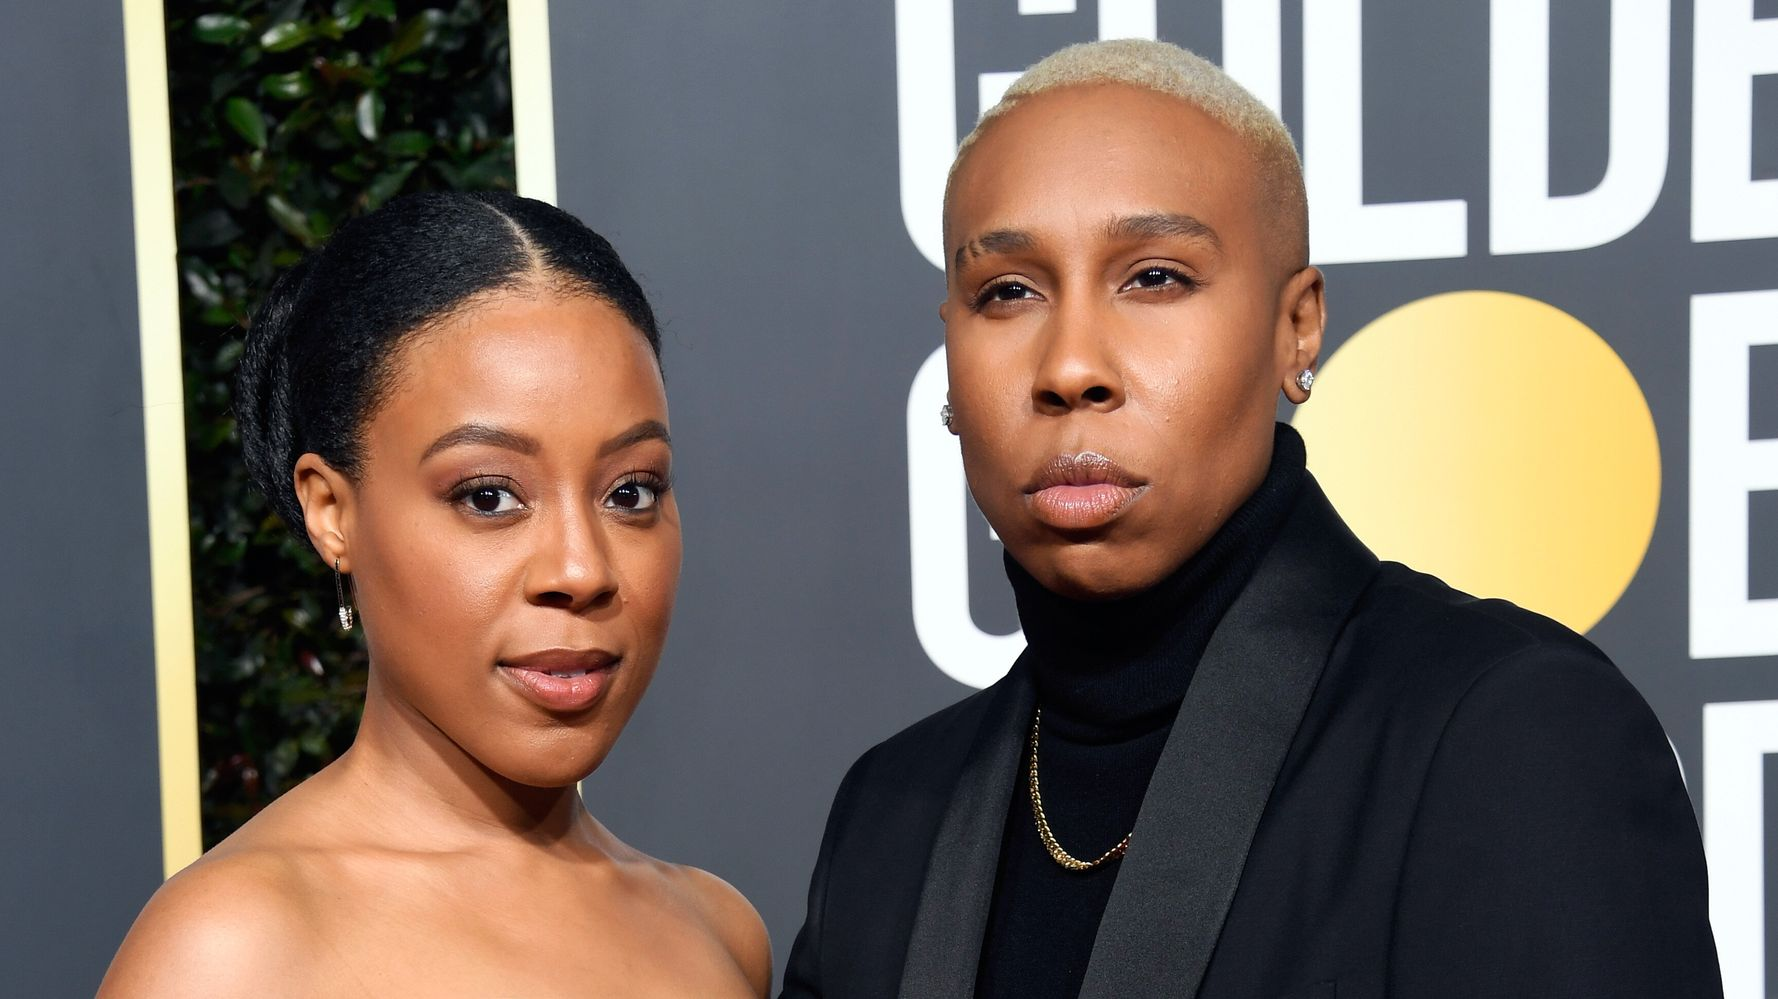 Westlake Legal Group 5dd01f262500009c08d2d4cb Lena Waithe Reveals She Wed Longtime Partner Alana Mayo In Private Ceremony